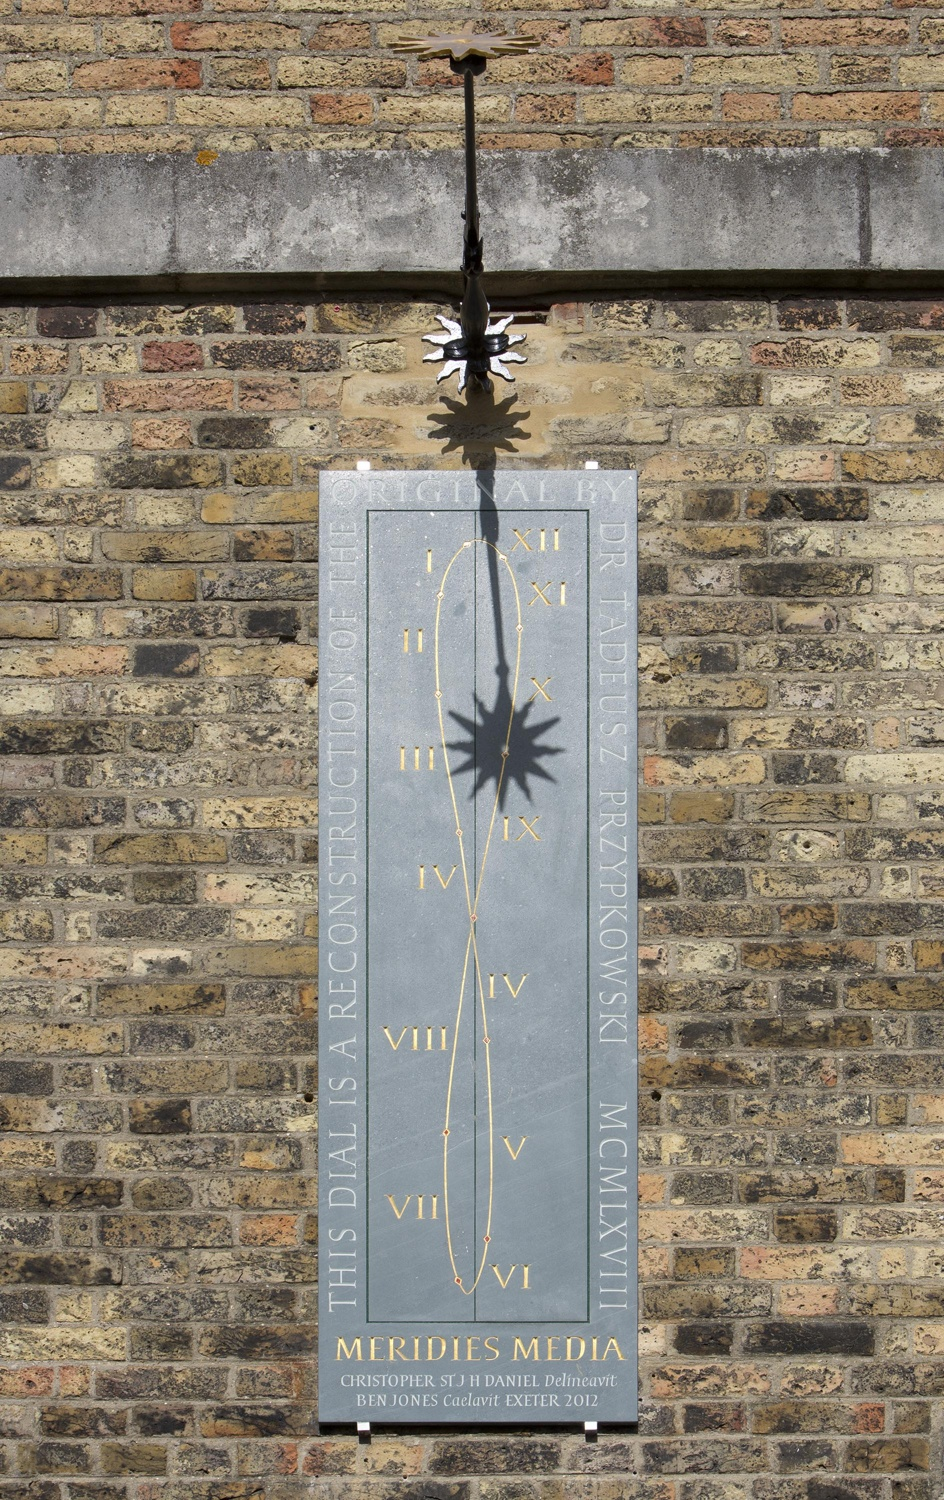 The Greenwich Royal Observatory's noon mark. © Christopher St J. H. Daniel, CC-BY-SA-3.0